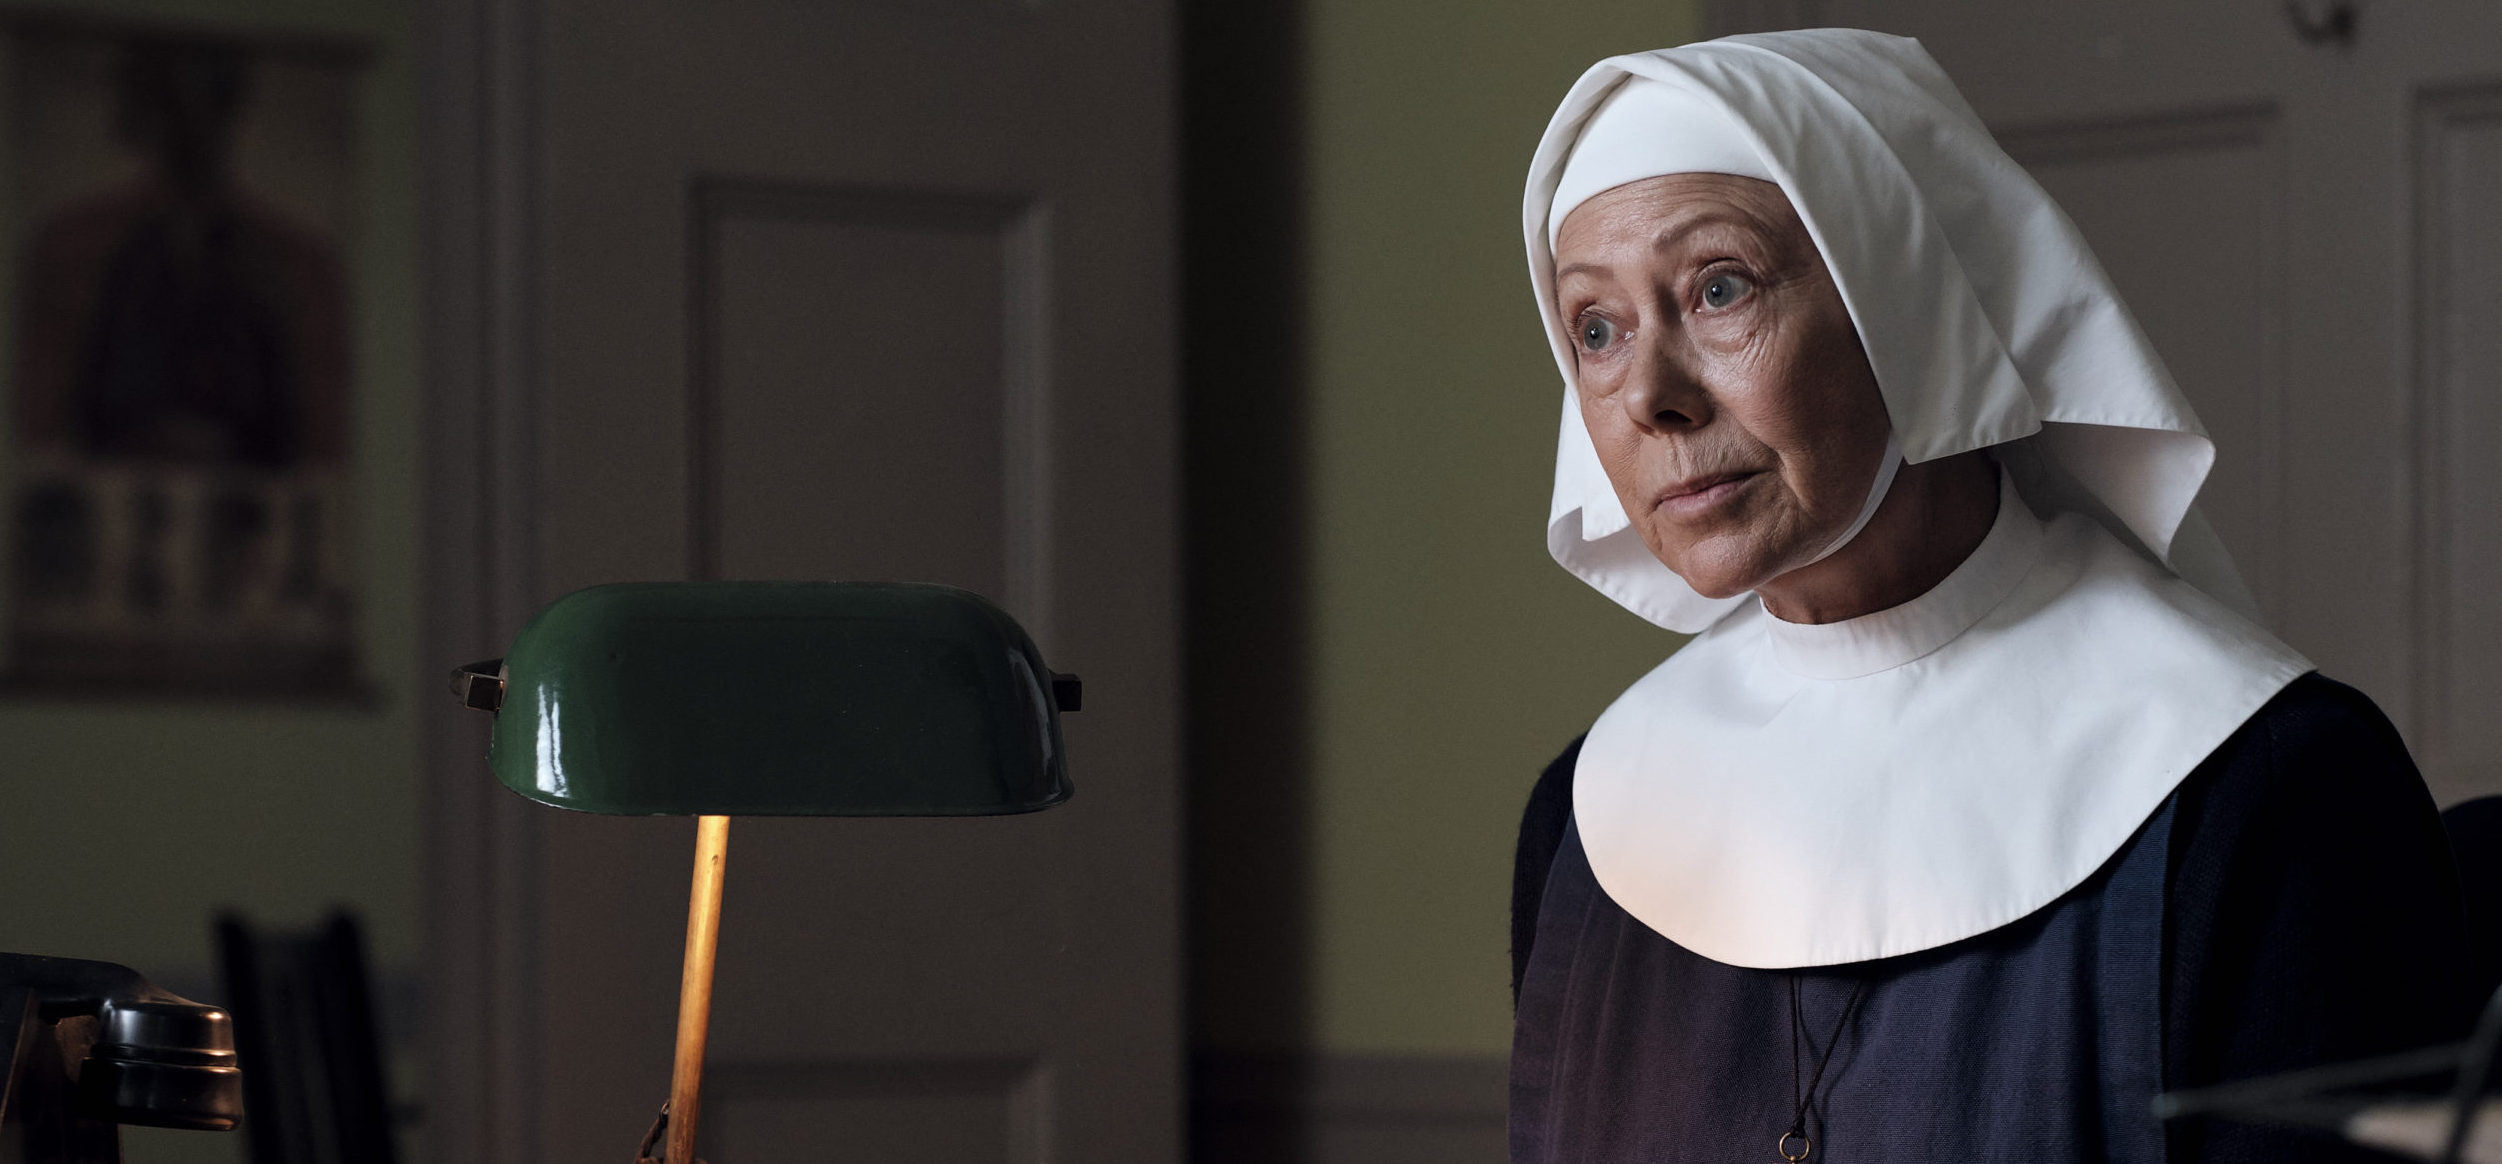 Full Exclusive interview with Jenny Agutter